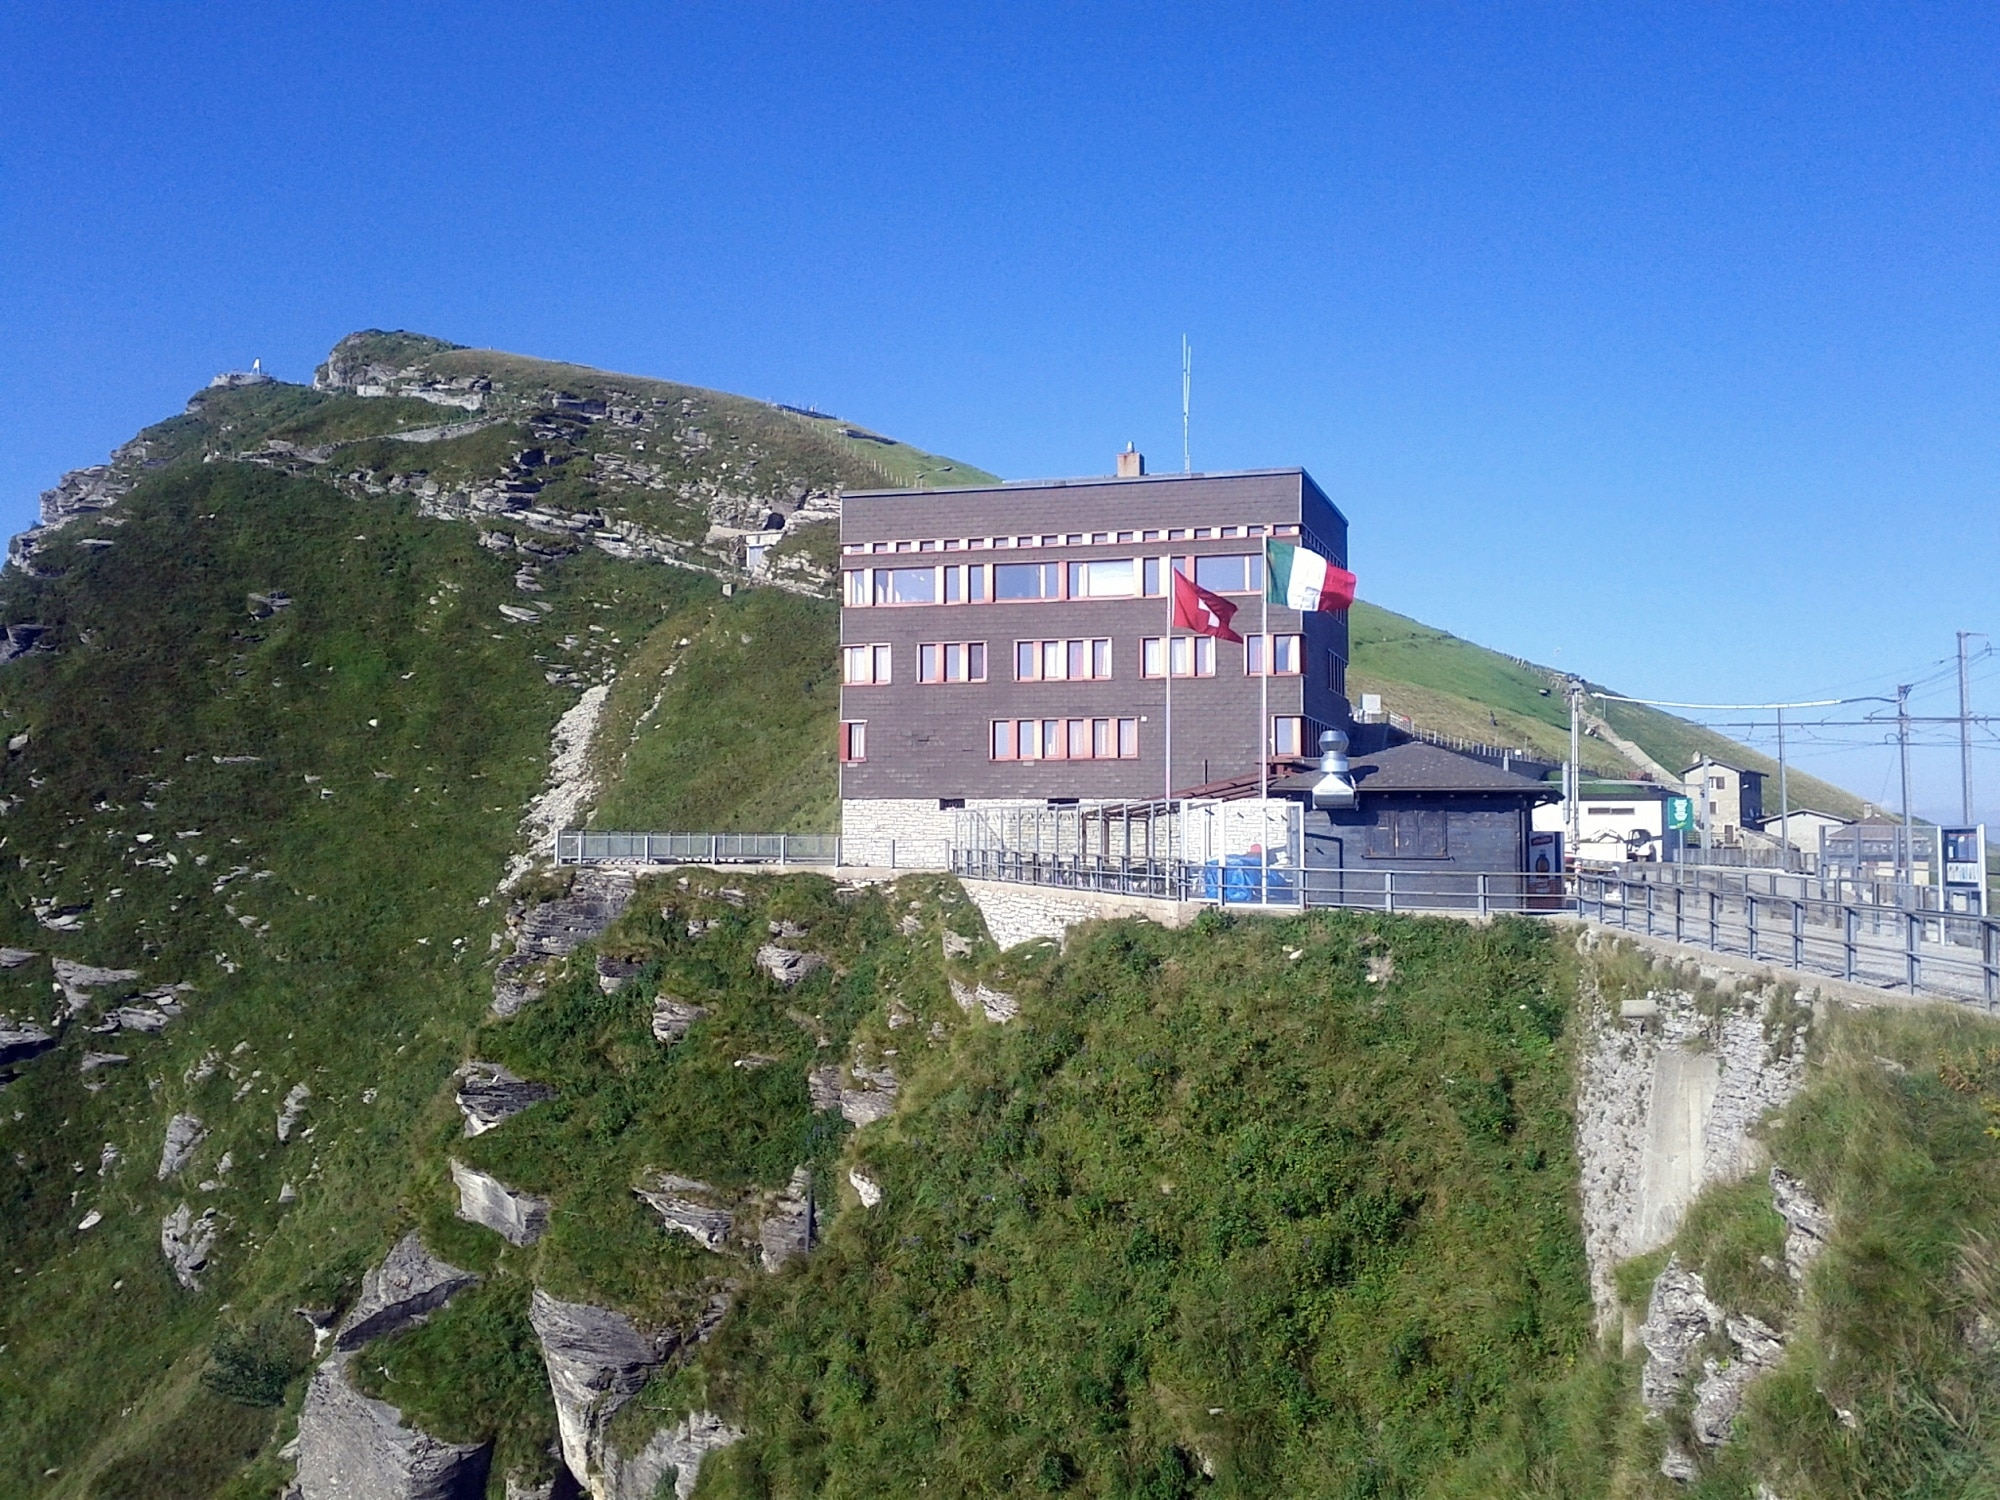 The La Vetta restaurant and the station near the summit of Monte Generoso.